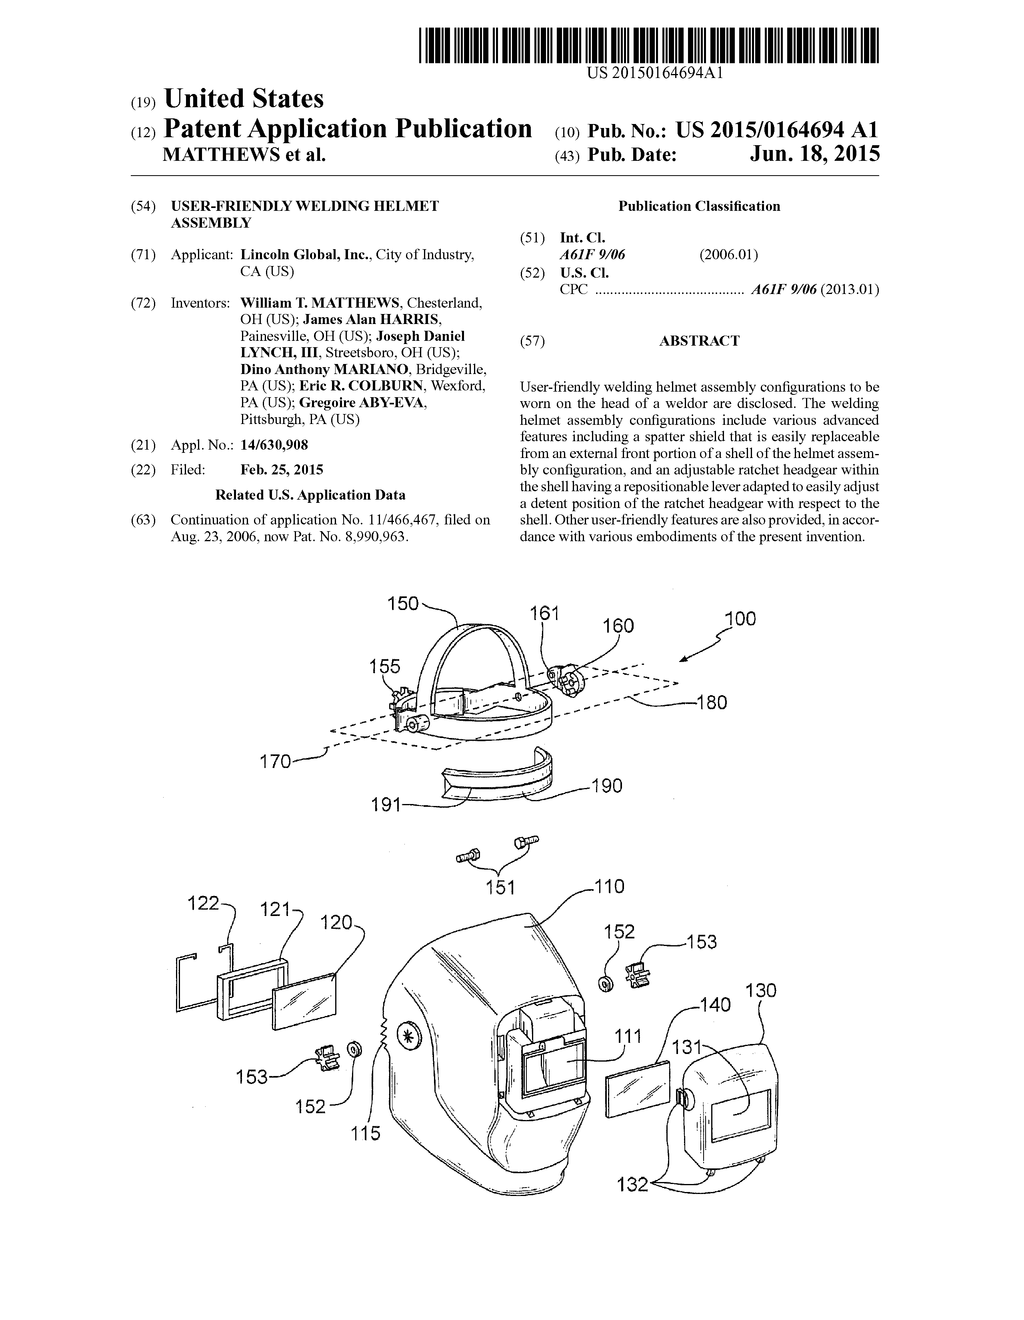 USER-FRIENDLY WELDING HELMET ASSEMBLY - diagram, schematic, and image 01www.patentsencyclopedia.com